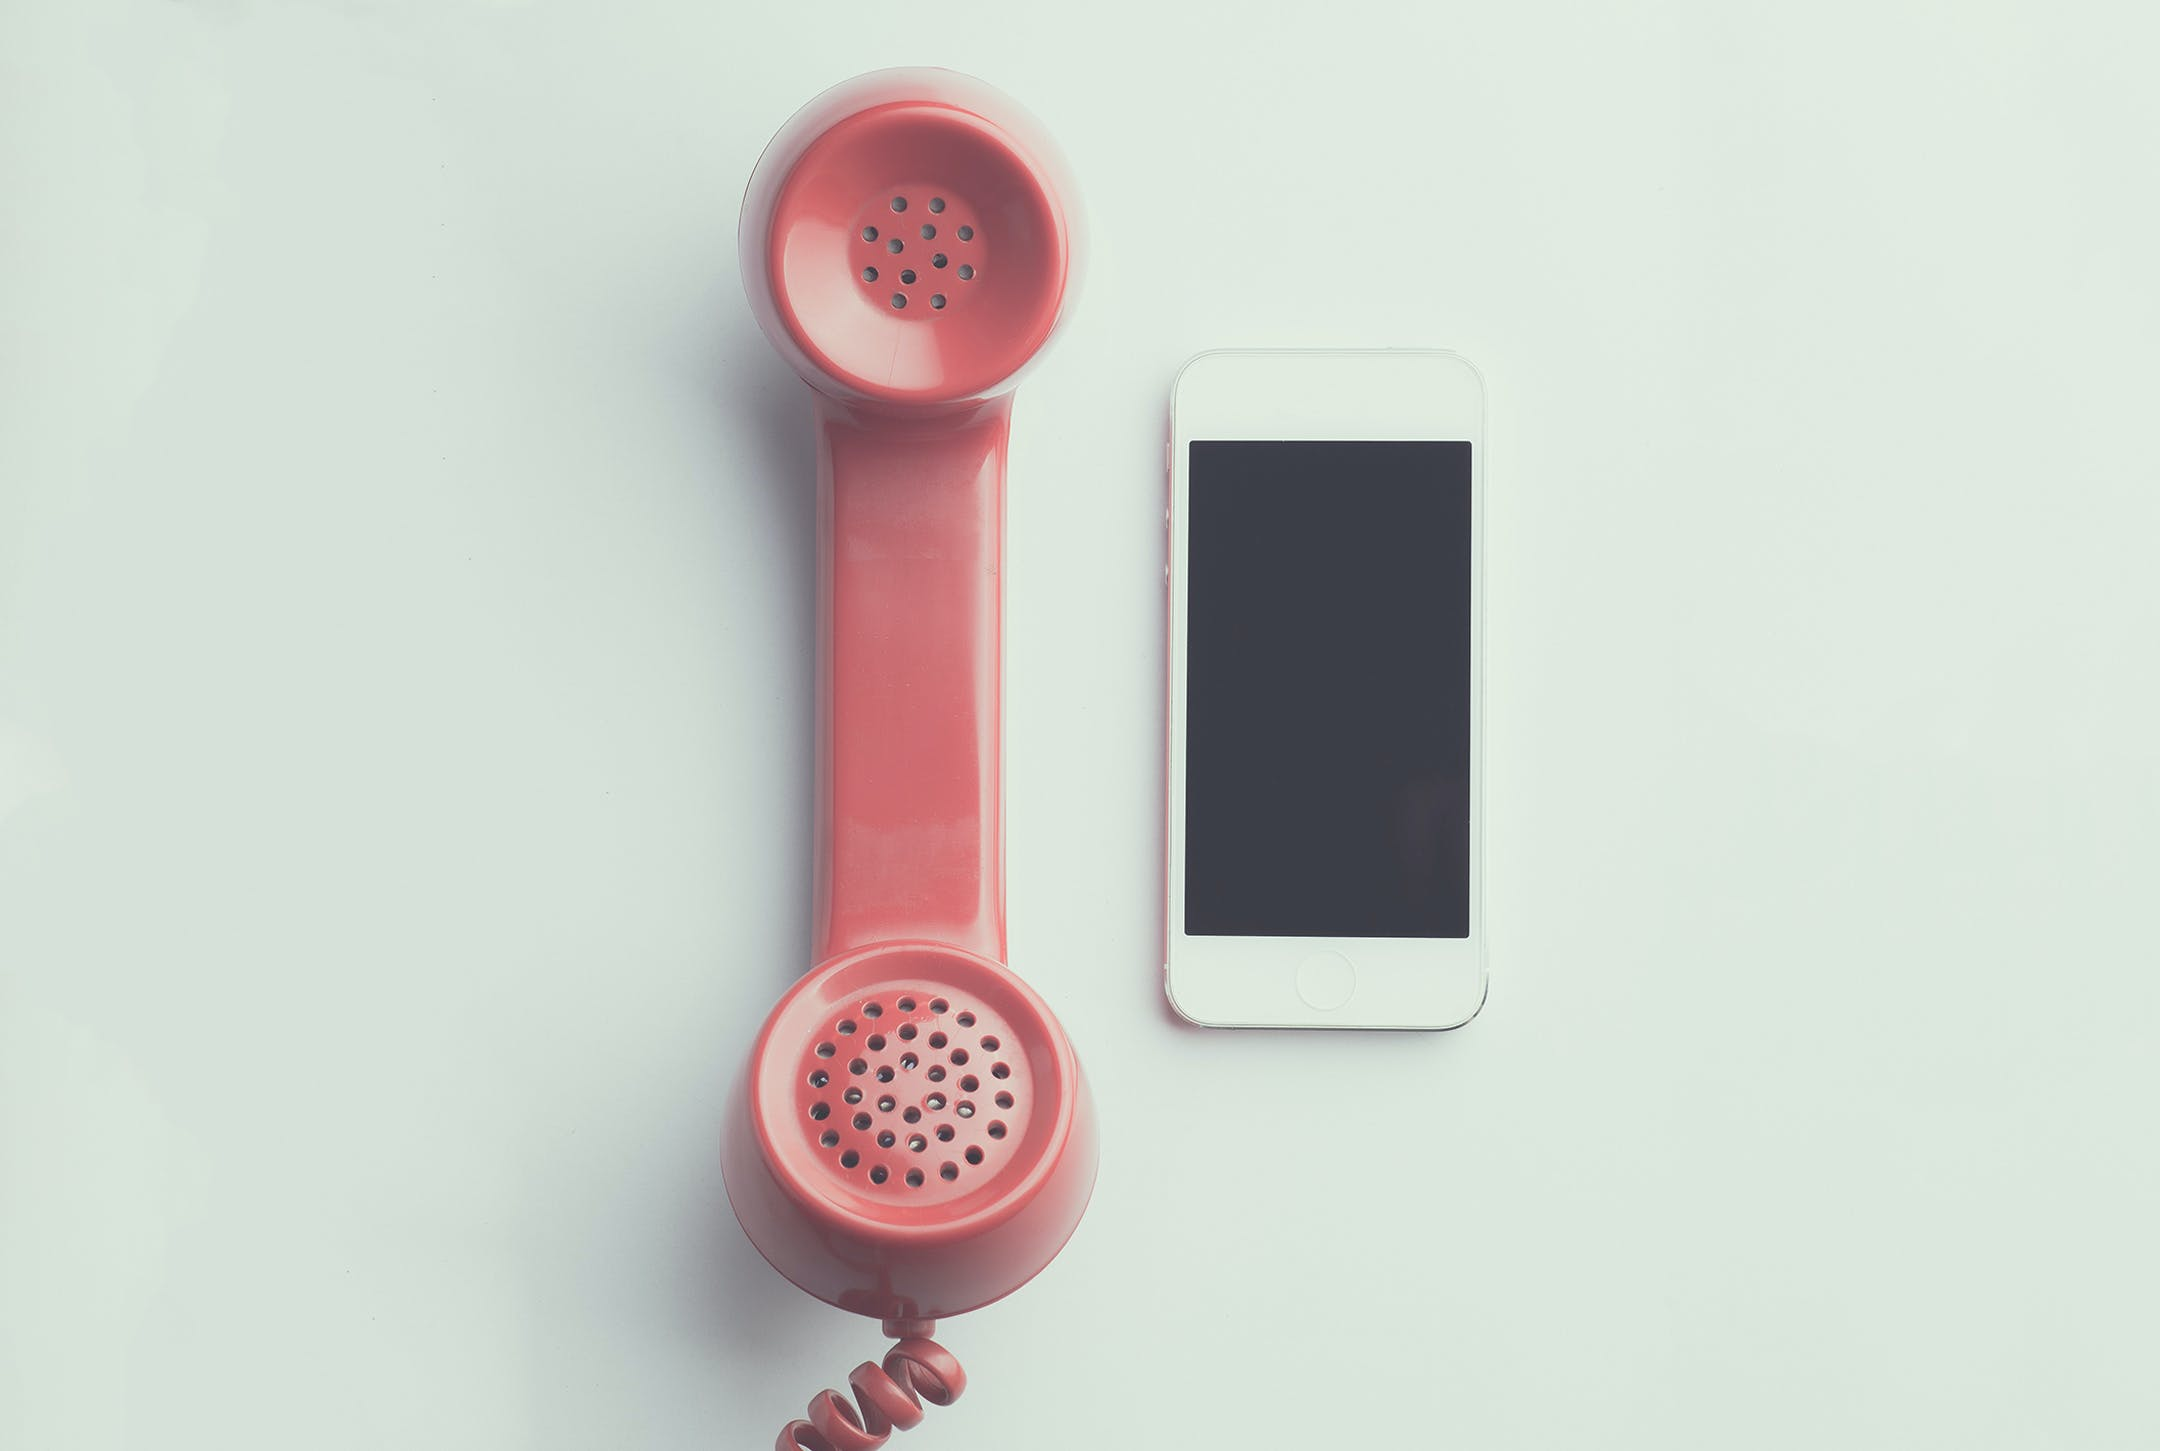 Flat Lay Photography of Red Anti-radiation Handset Telephone Beside Iphone